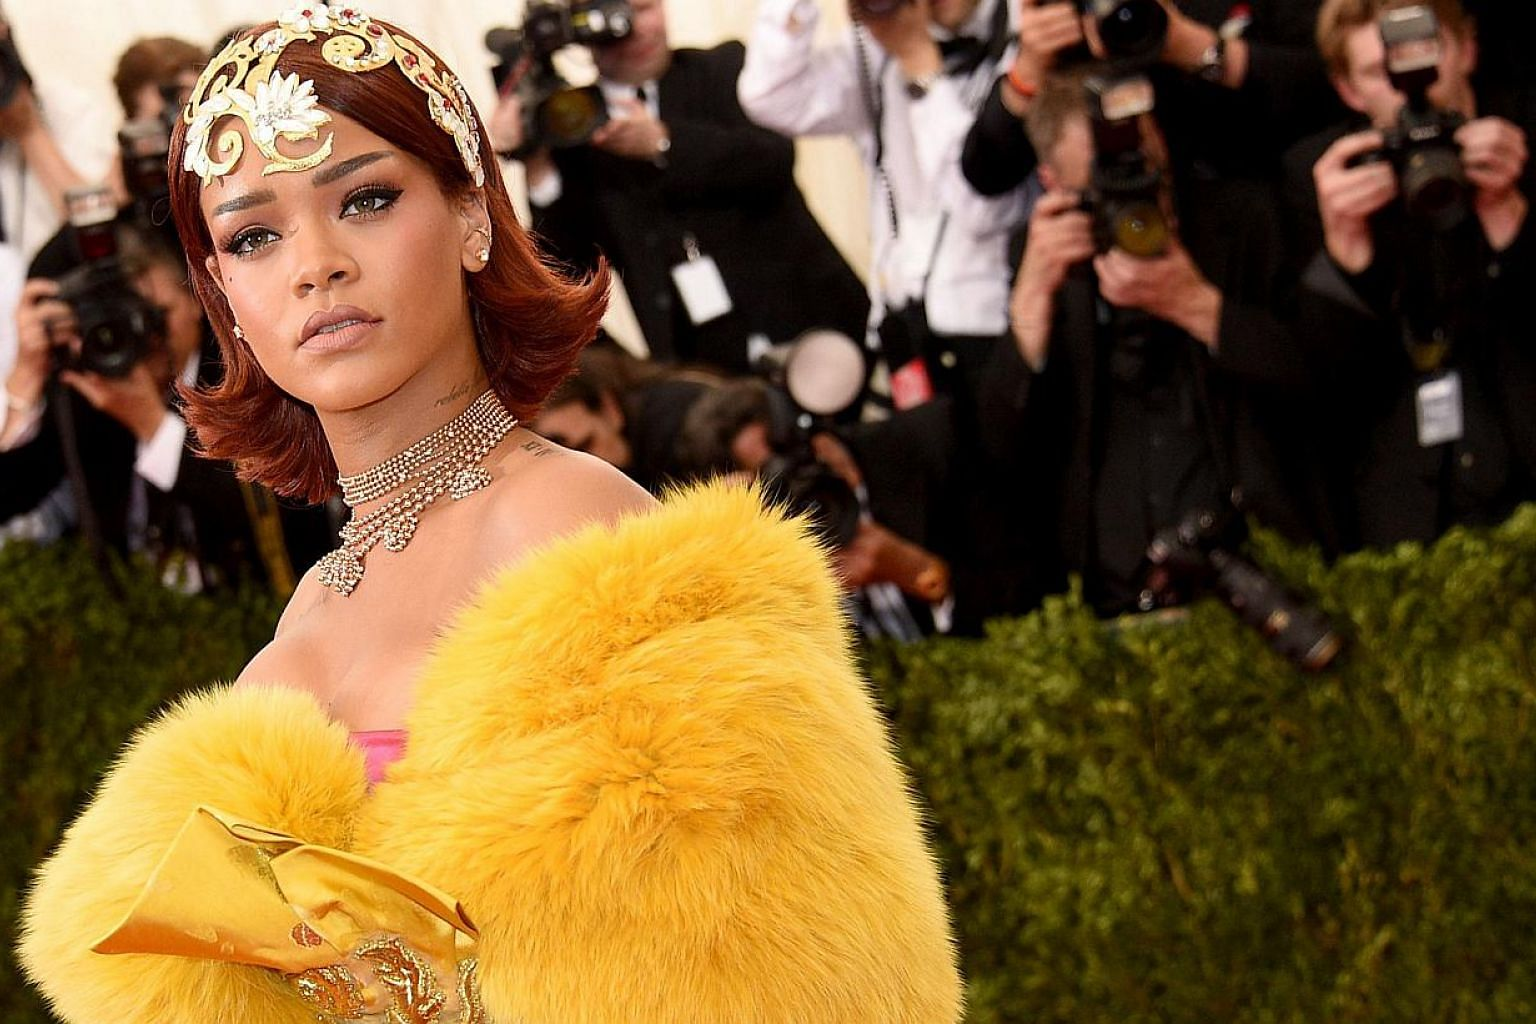 Rihanna wearing a gold tiara and flowing yellow robe at the New York Met Ball on May 4, 2015. The city's party of the year, attended by stars such as Madonna, George Clooney, Sarah Jessica Parker and Robert Pattinson, chose China as the theme of its